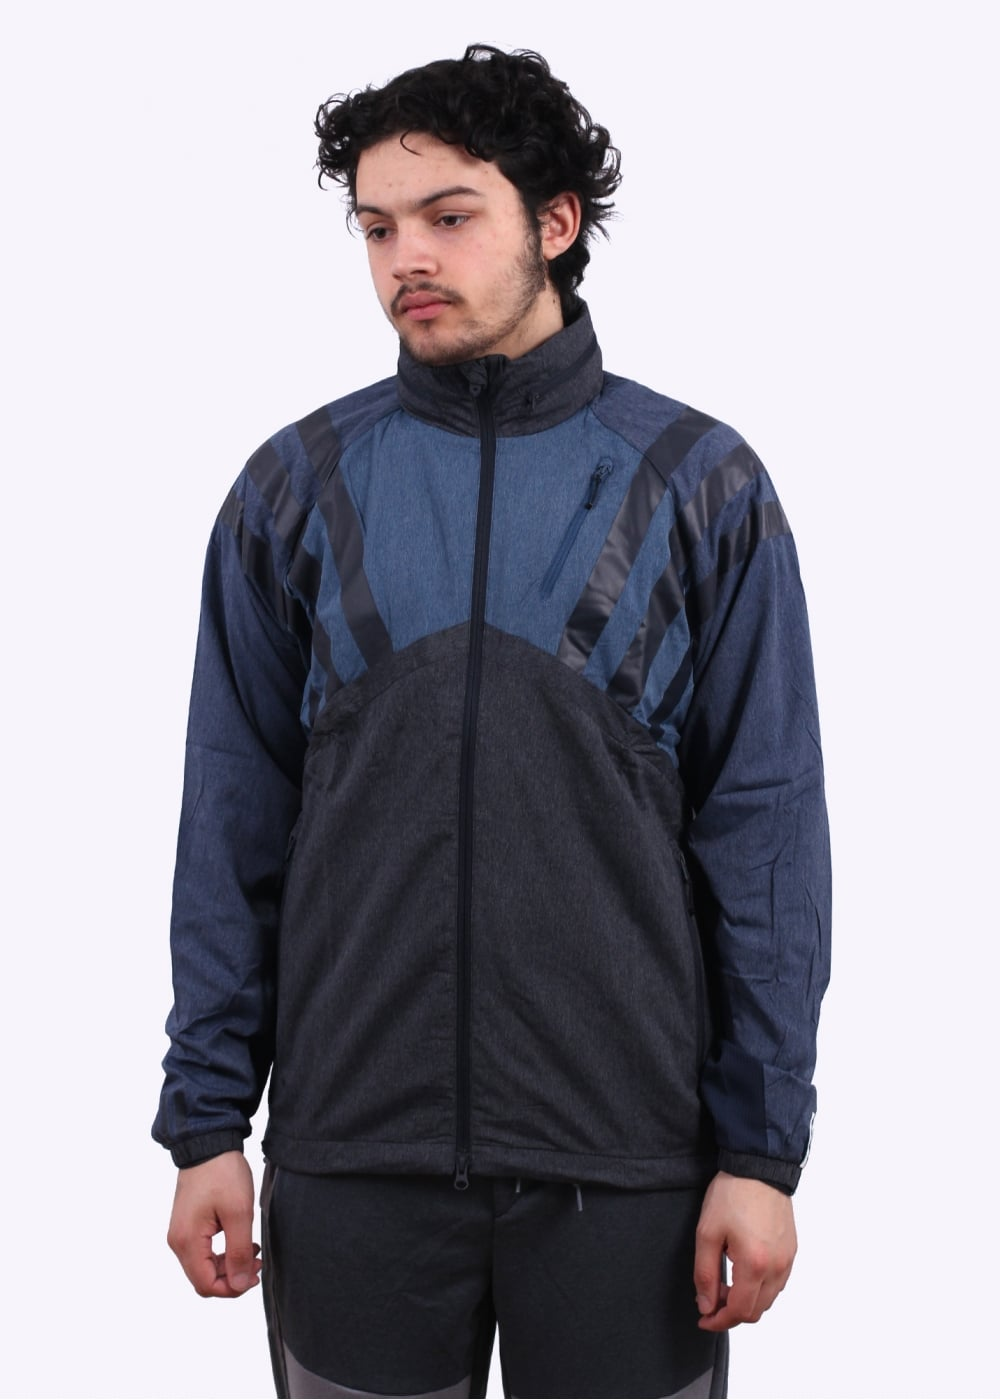 1769ea382b56 adidas Originals x White Mountaineering Windbreaker - Navy